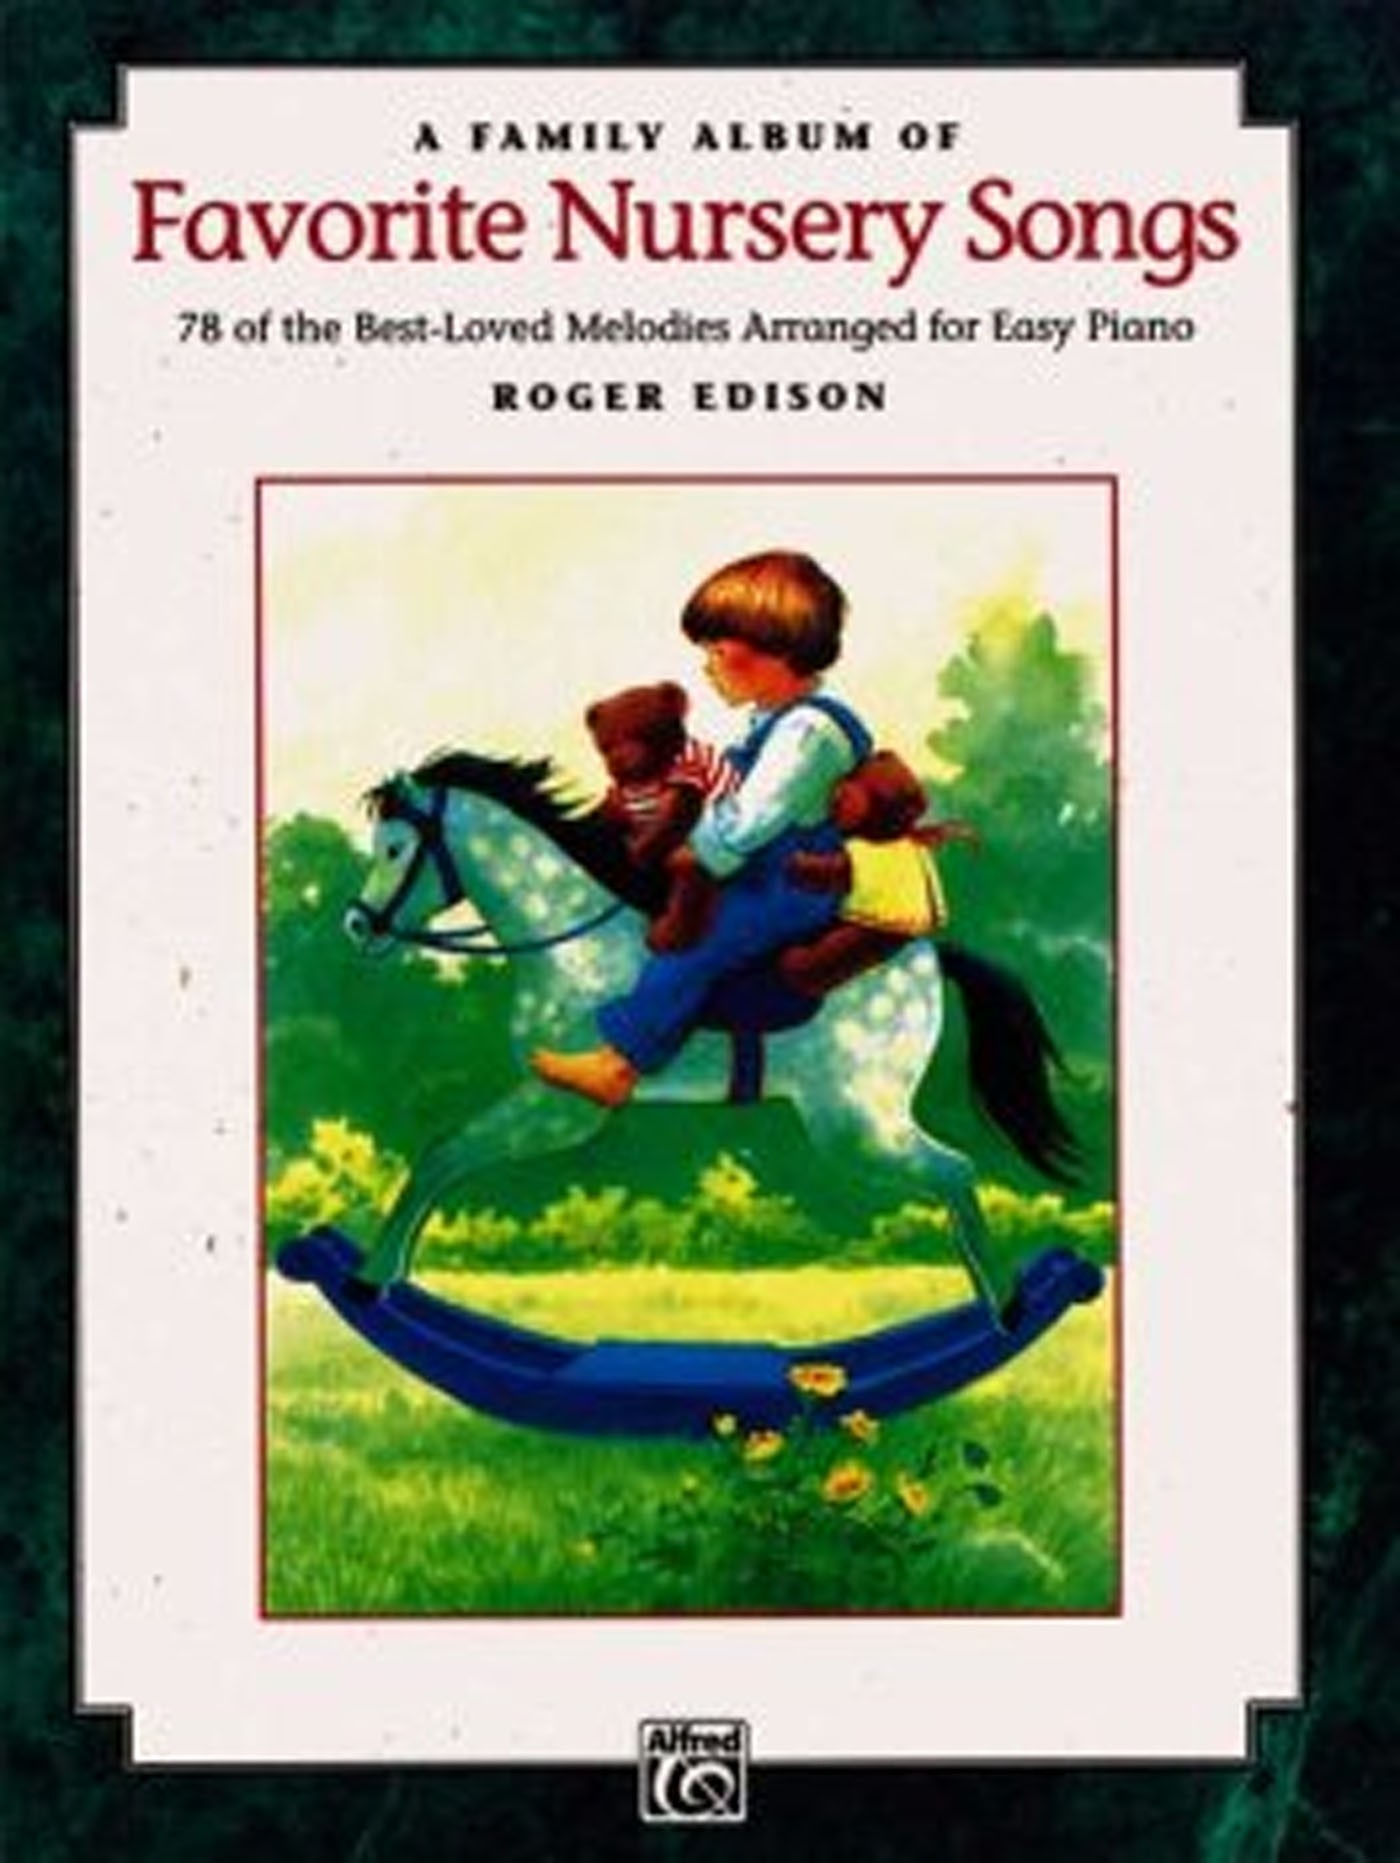 Favorite Nursery Songs Book 78 Best Loved Melodies Easy Piano Roger Edison S147